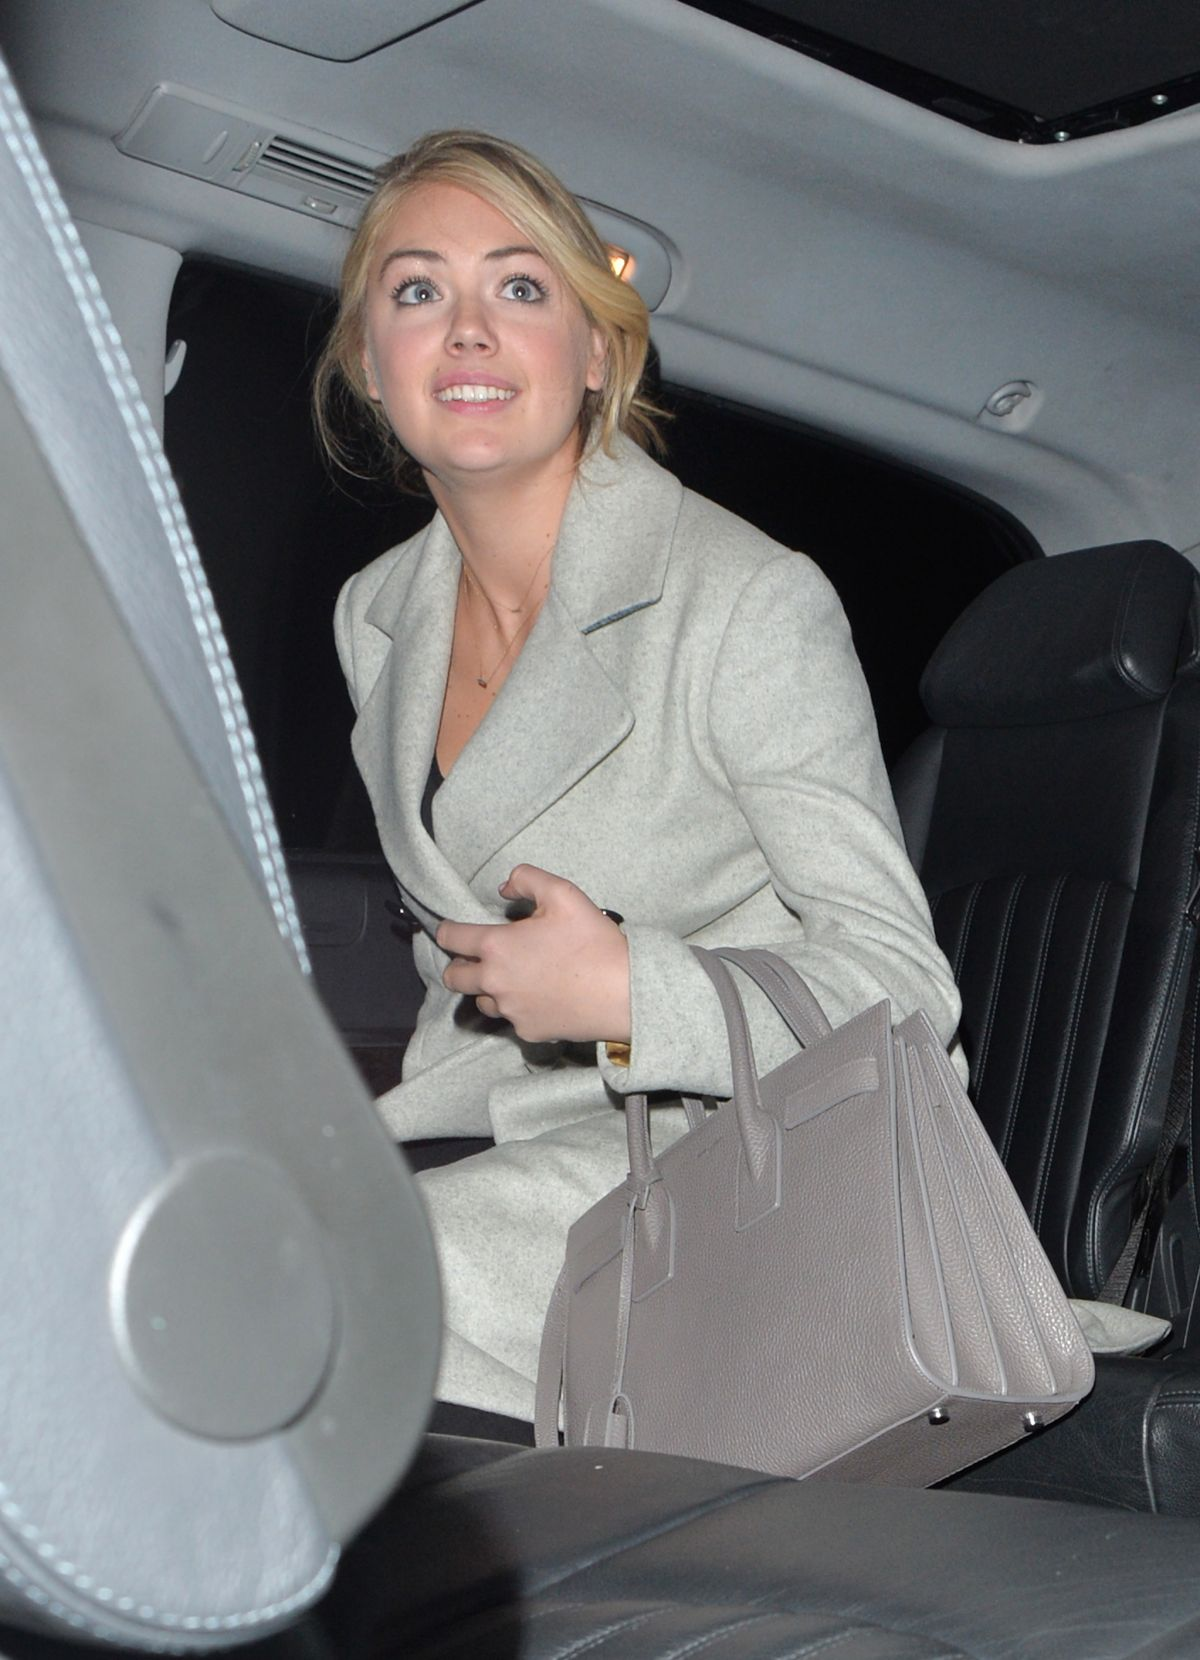 KATE UPTON at Chiltern Firehouse in London